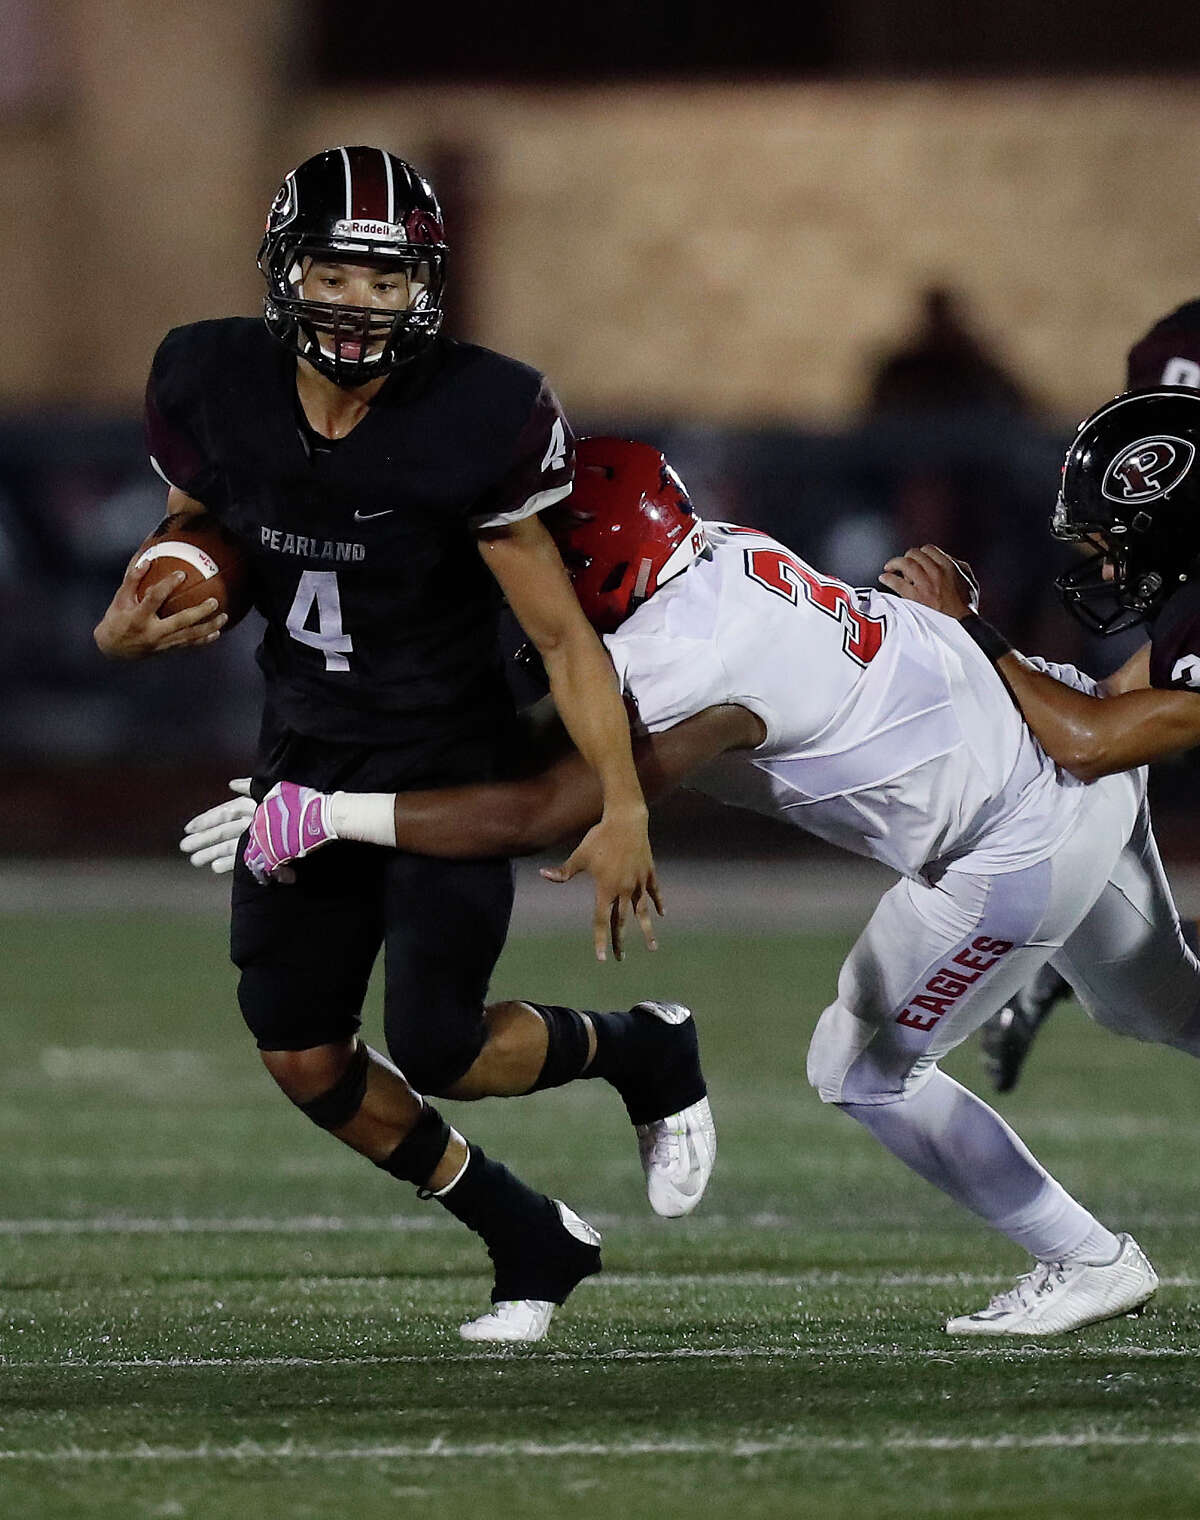 Pearland's running back Davier Pinkston (4) tries to gain yardage on Dawson's Dominque Taylor (34) during the second half of a District 23-6A high school game between Pearland and Dawson, Friday,Oct. 14, 2016 in Pearland.